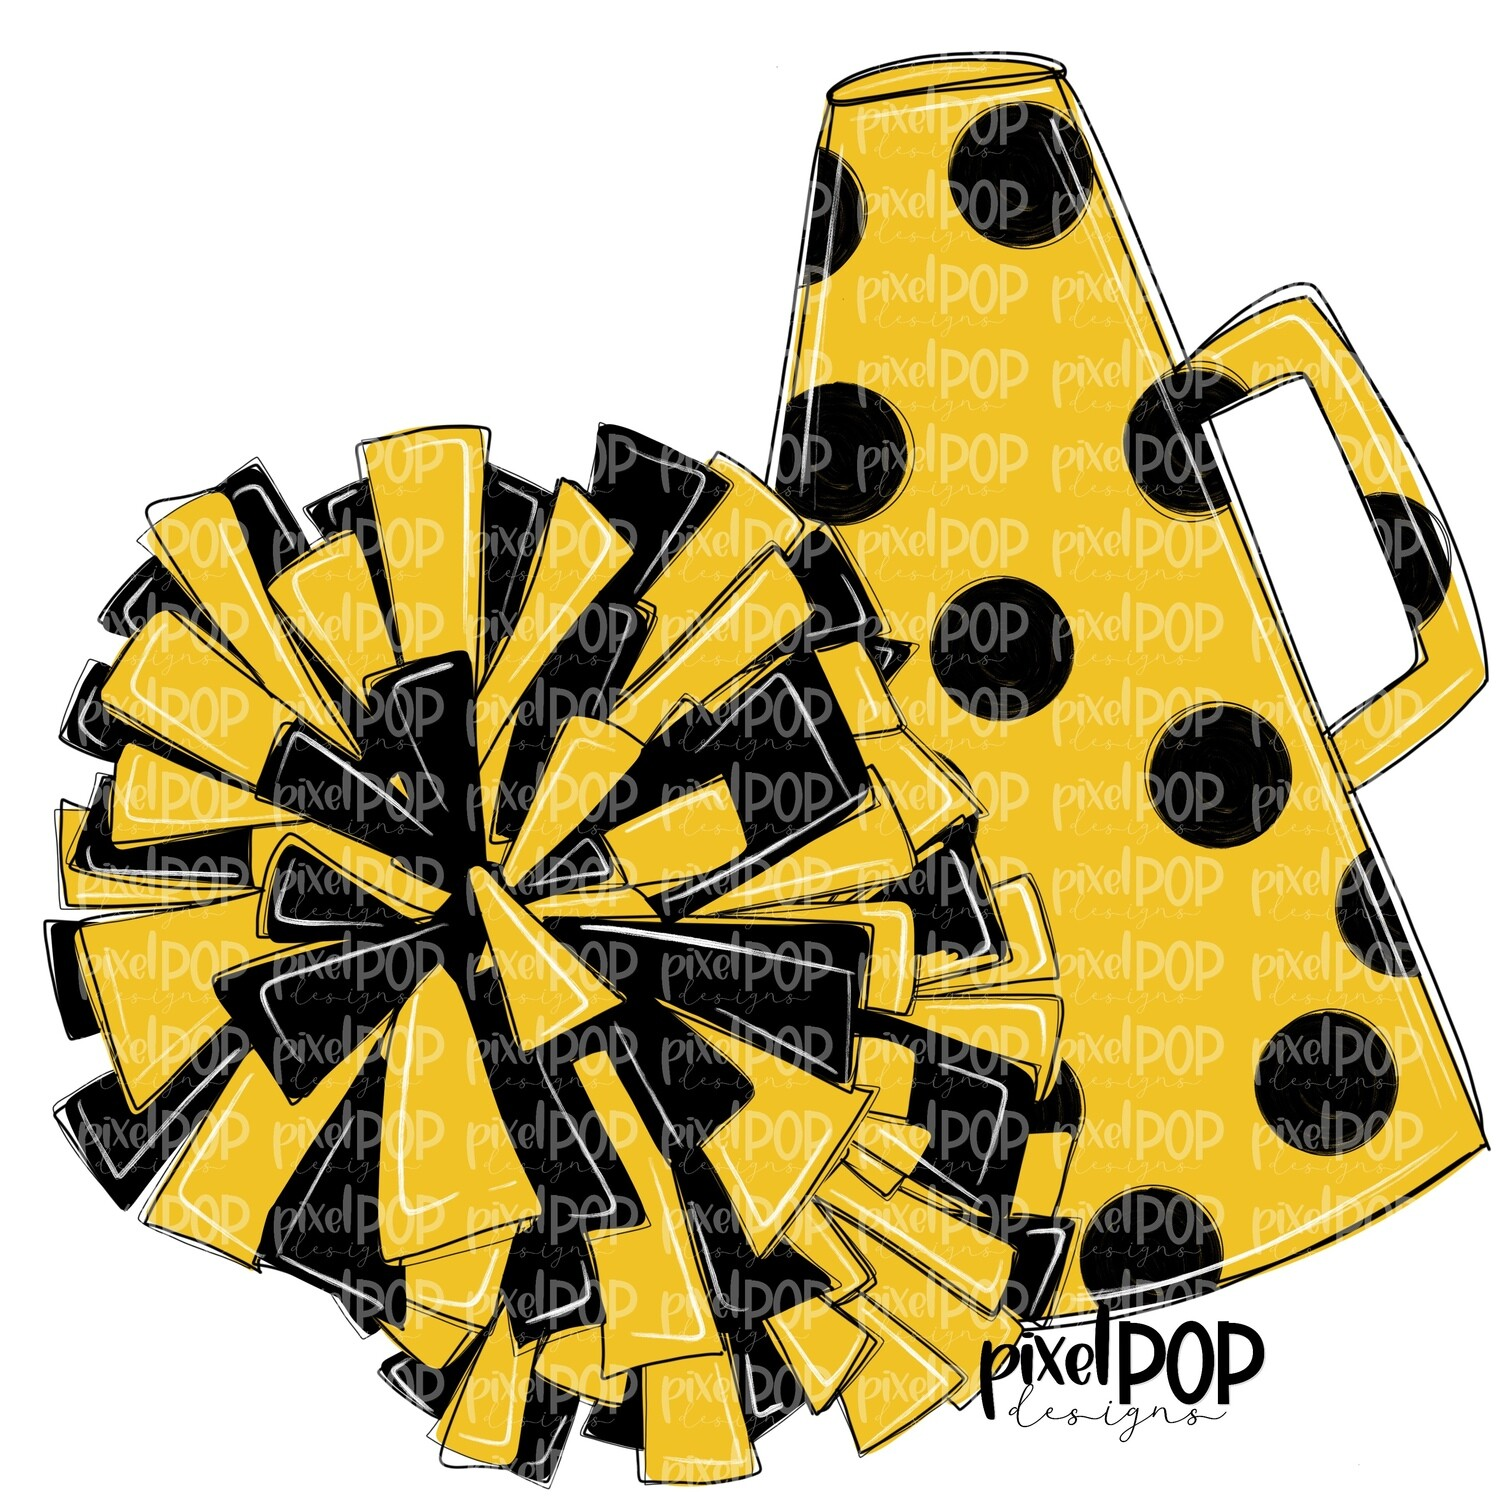 Cheerleading Megaphone and Poms Black and Yellow PNG   Cheerleading   Cheer Design   Cheer Art   Cheer Blank   Sports Art